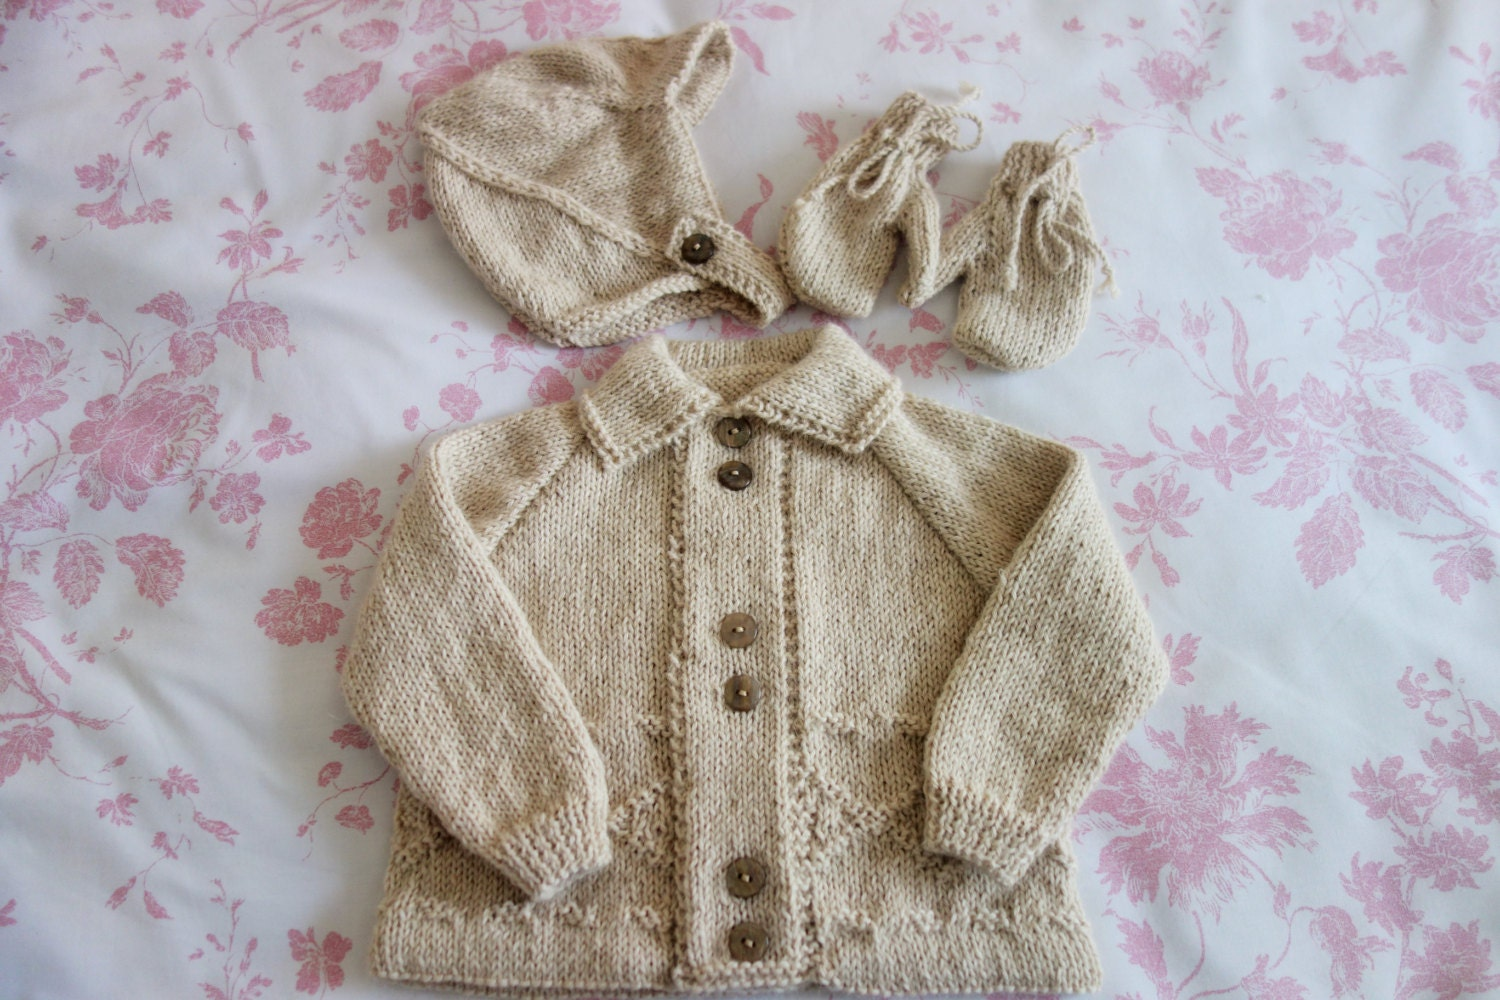 Hand knitted in 100 Pure Baby Alpaca babys sweaterjacketcoat hat and mittens to fit approx 69 months in light beige colour